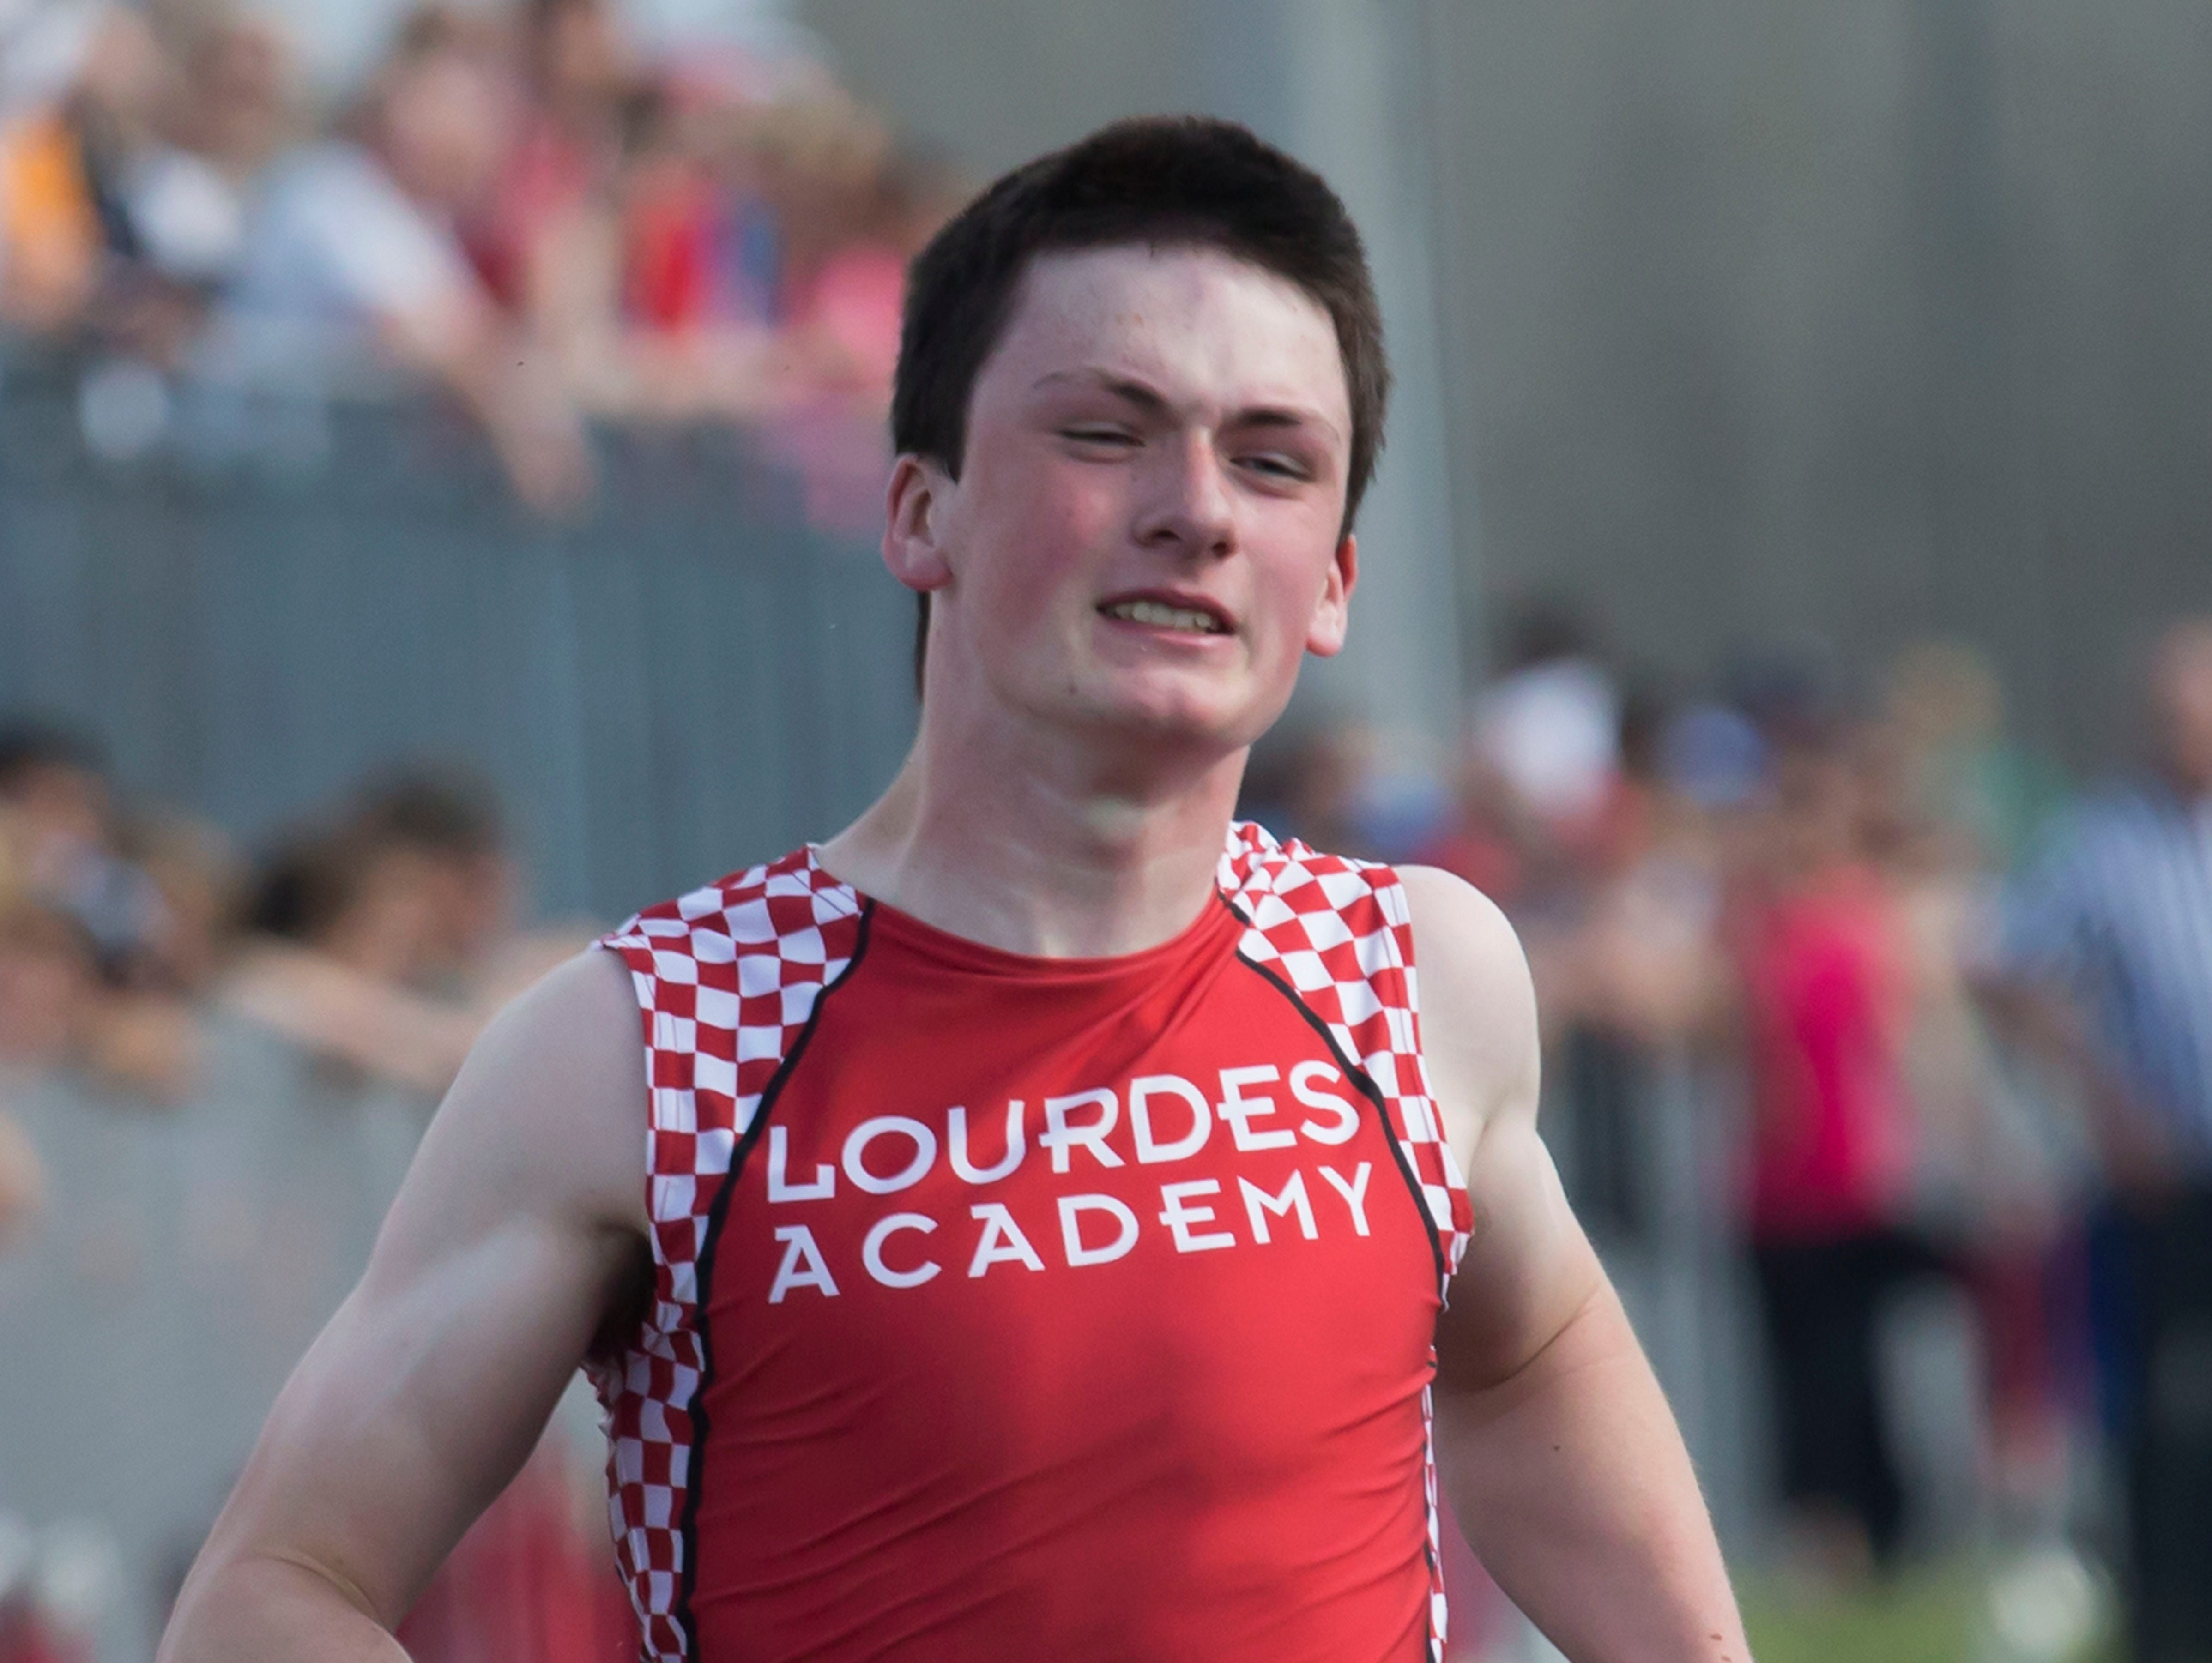 Lourdes Academy's Christian Pecore run the 100 meter dash in a Division 3 track meet at Princeton High School May 29, 2015.